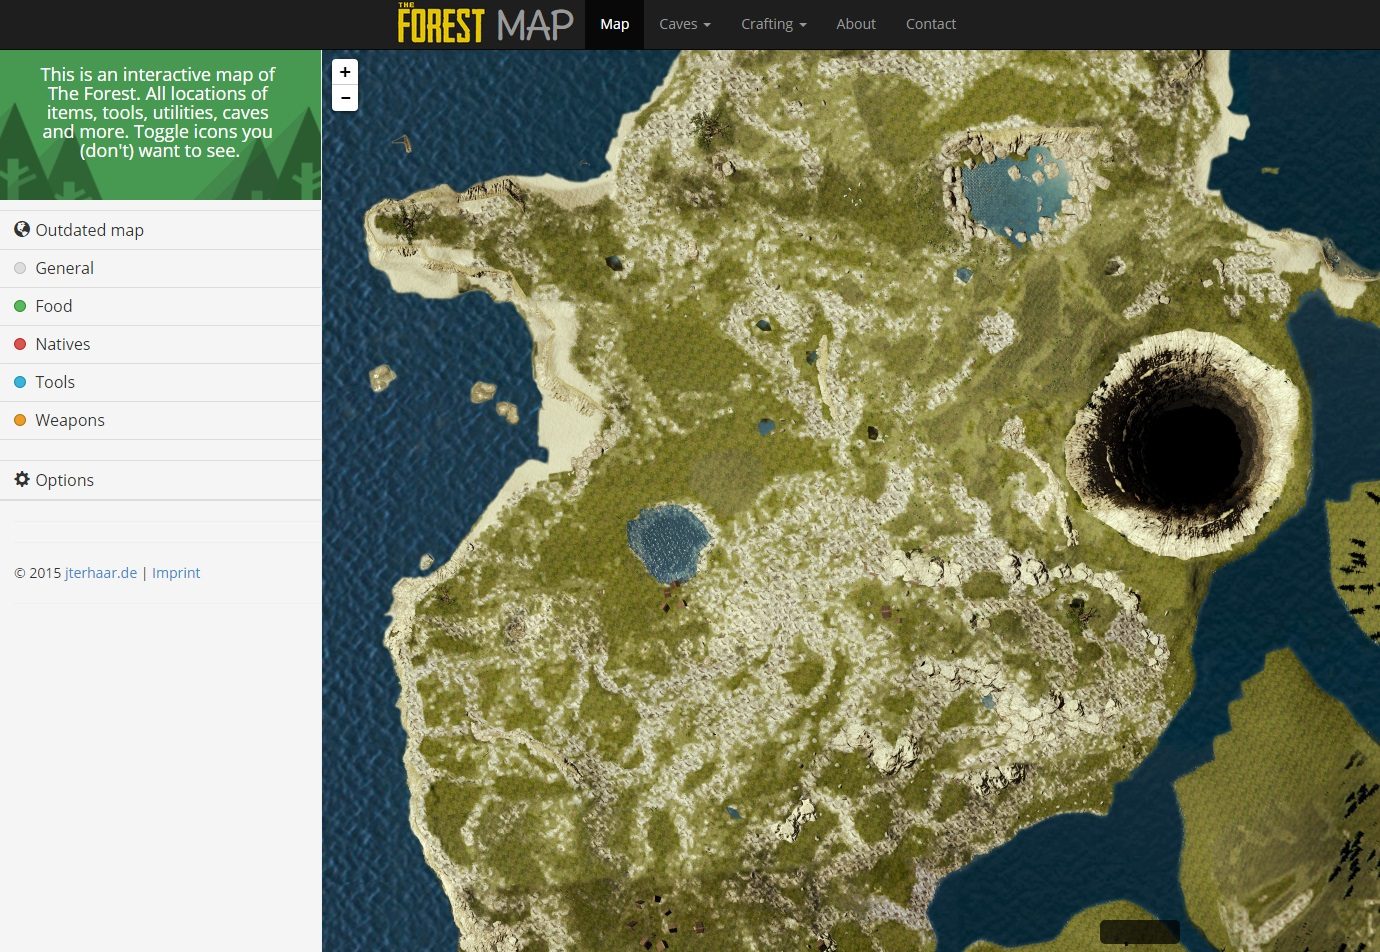 download Analysing Strategic Environmental Assessment: Towards Better Decision making (The Fondazione Eni Enrico Mattei on Economics and the Environment)